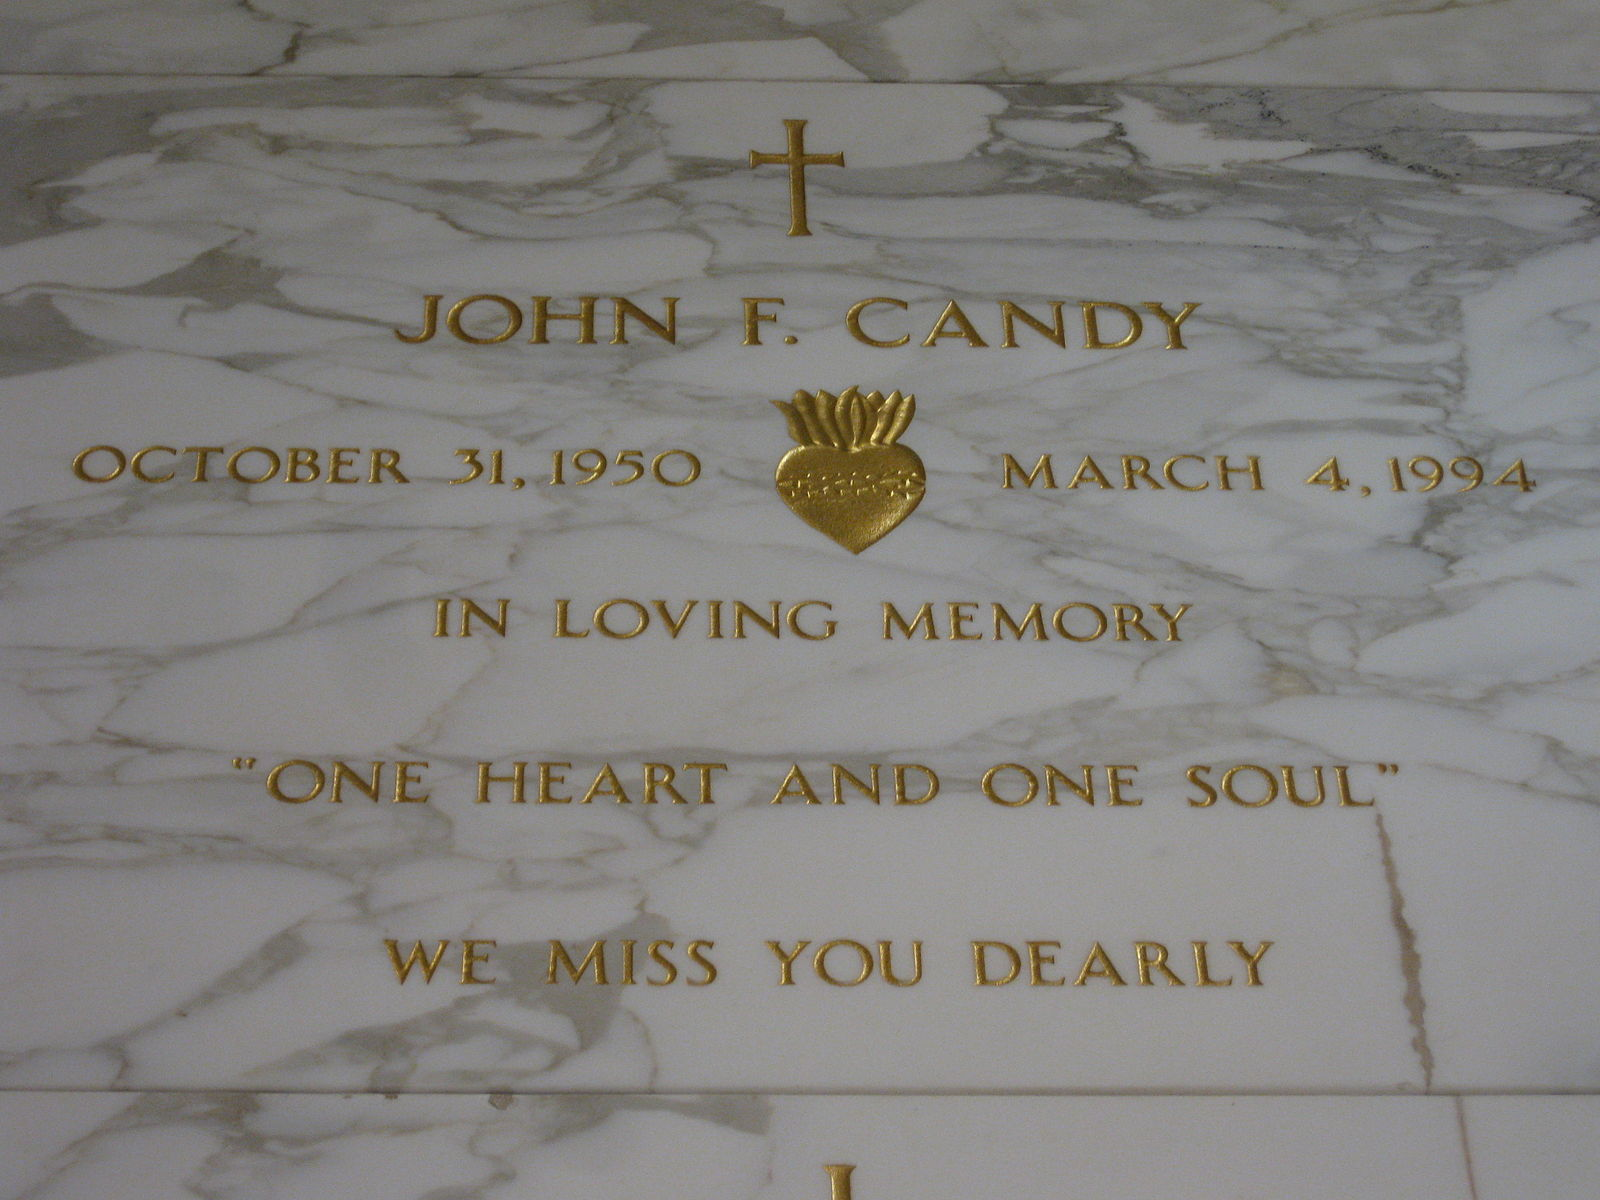 Remembering John Candy